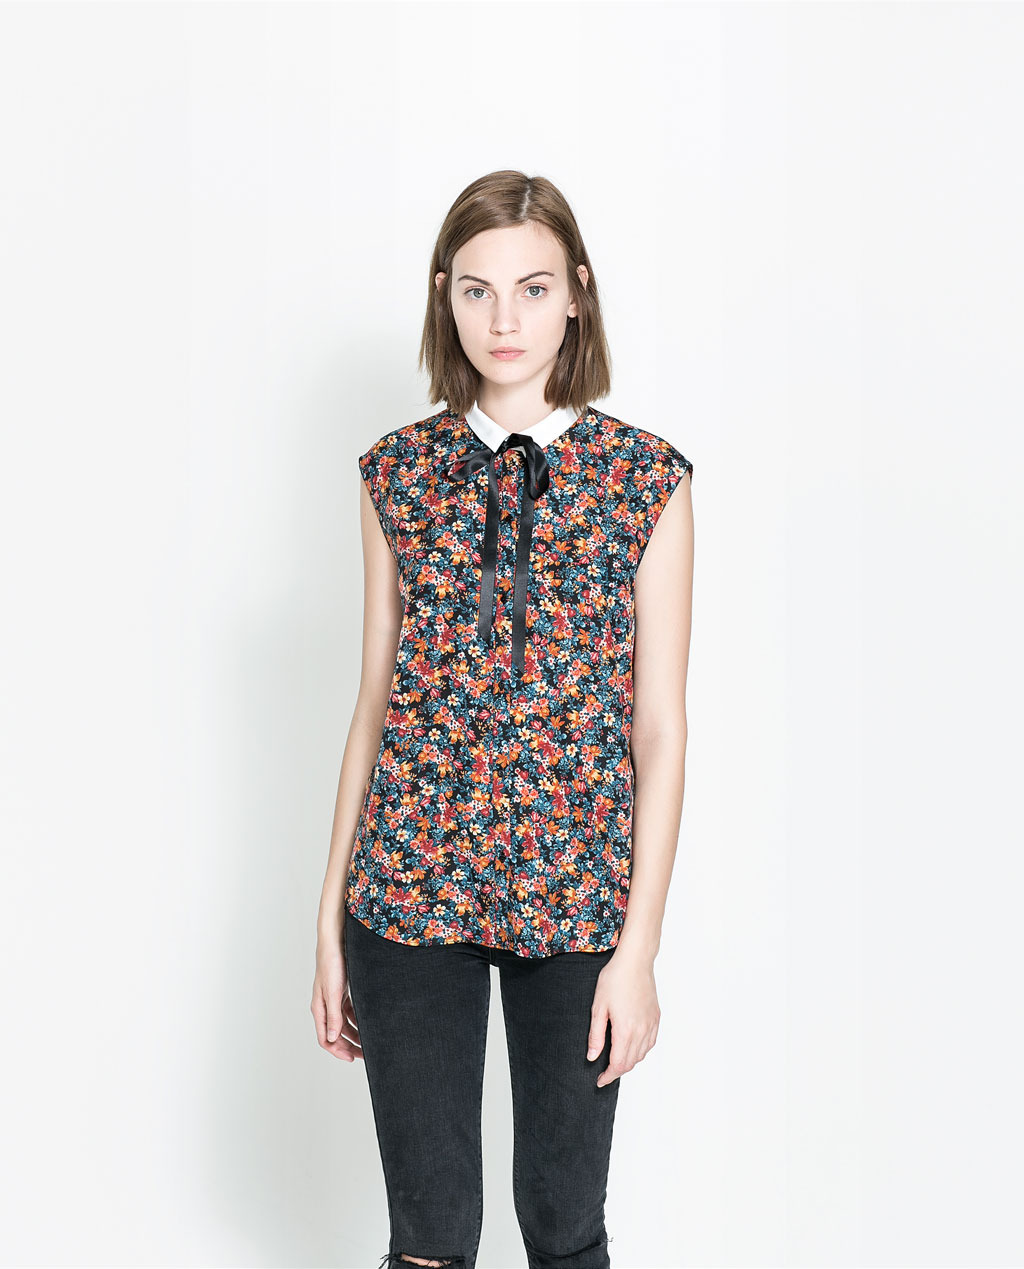 Shirt With Bow - sleeve style: capped; secondary colour: pink; predominant colour: denim; occasions: casual, creative work; length: standard; style: top; fibres: polyester/polyamide - 100%; fit: body skimming; neckline: no opening/shirt collar/peter pan; sleeve length: short sleeve; texture group: cotton feel fabrics; pattern type: fabric; pattern: florals; season: a/w 2013